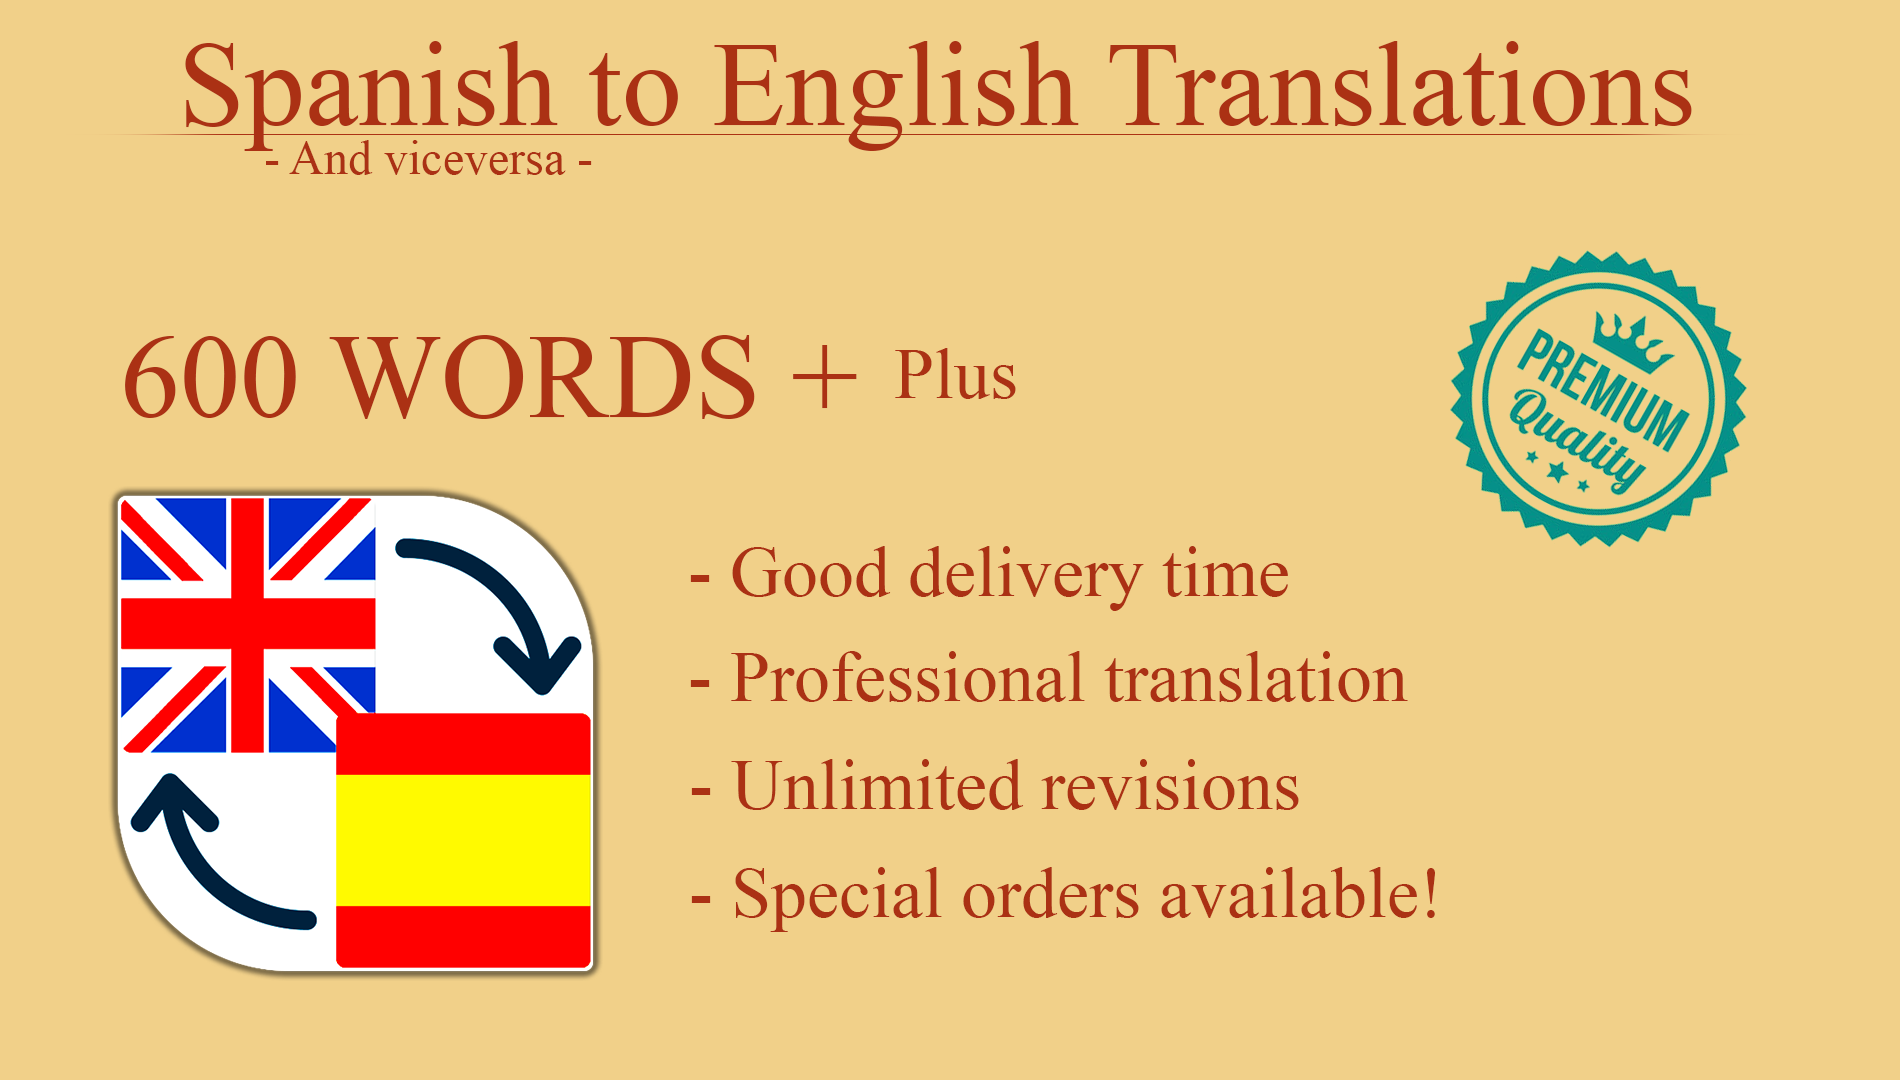 Professional translation from English to Spanish and viceversa 600w +